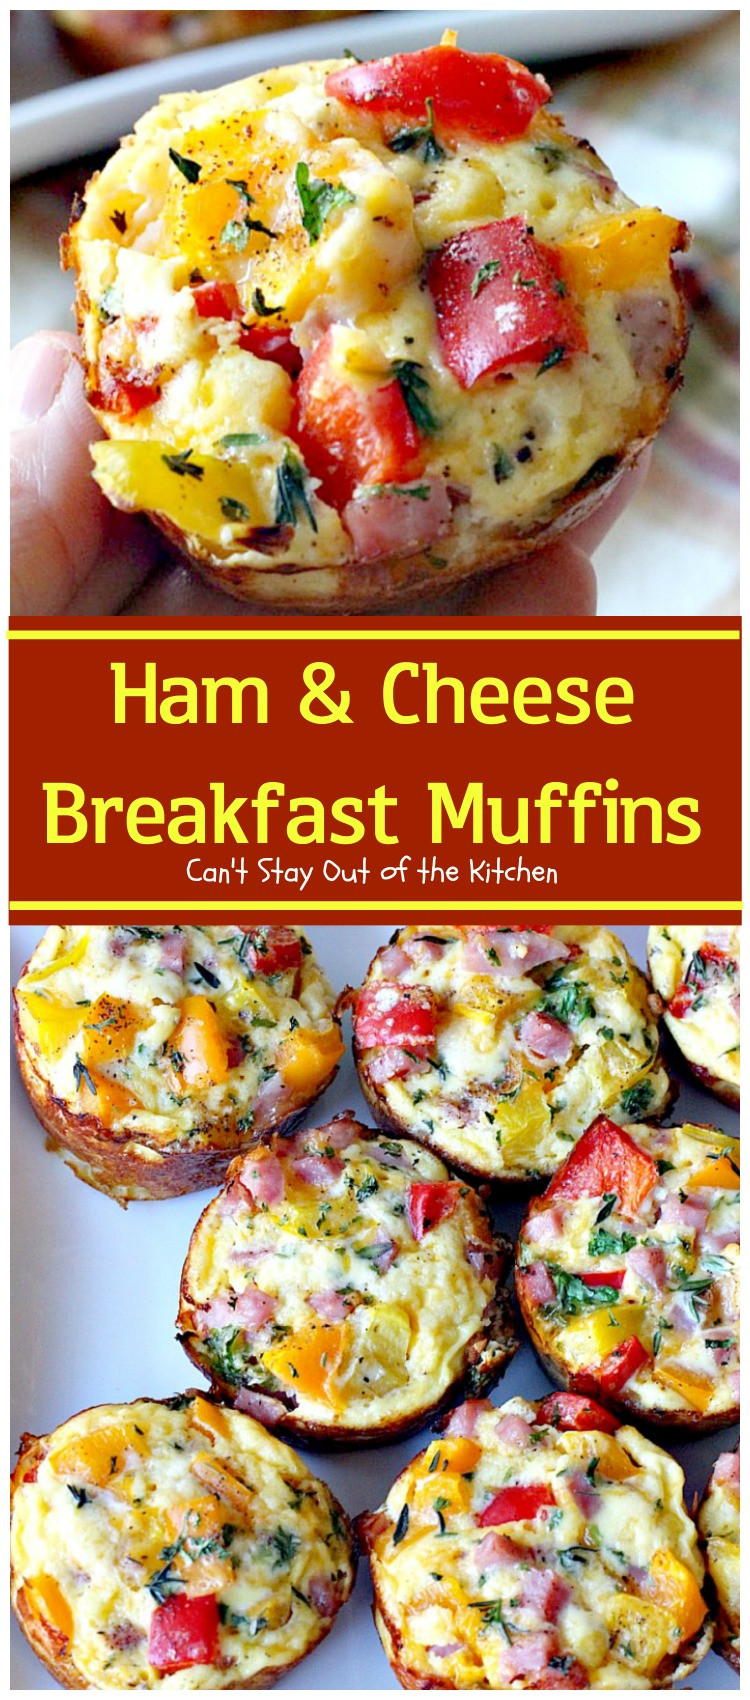 Breakfast Muffins Recipe  Ham and Cheese Breakfast Muffins Can t Stay Out of the